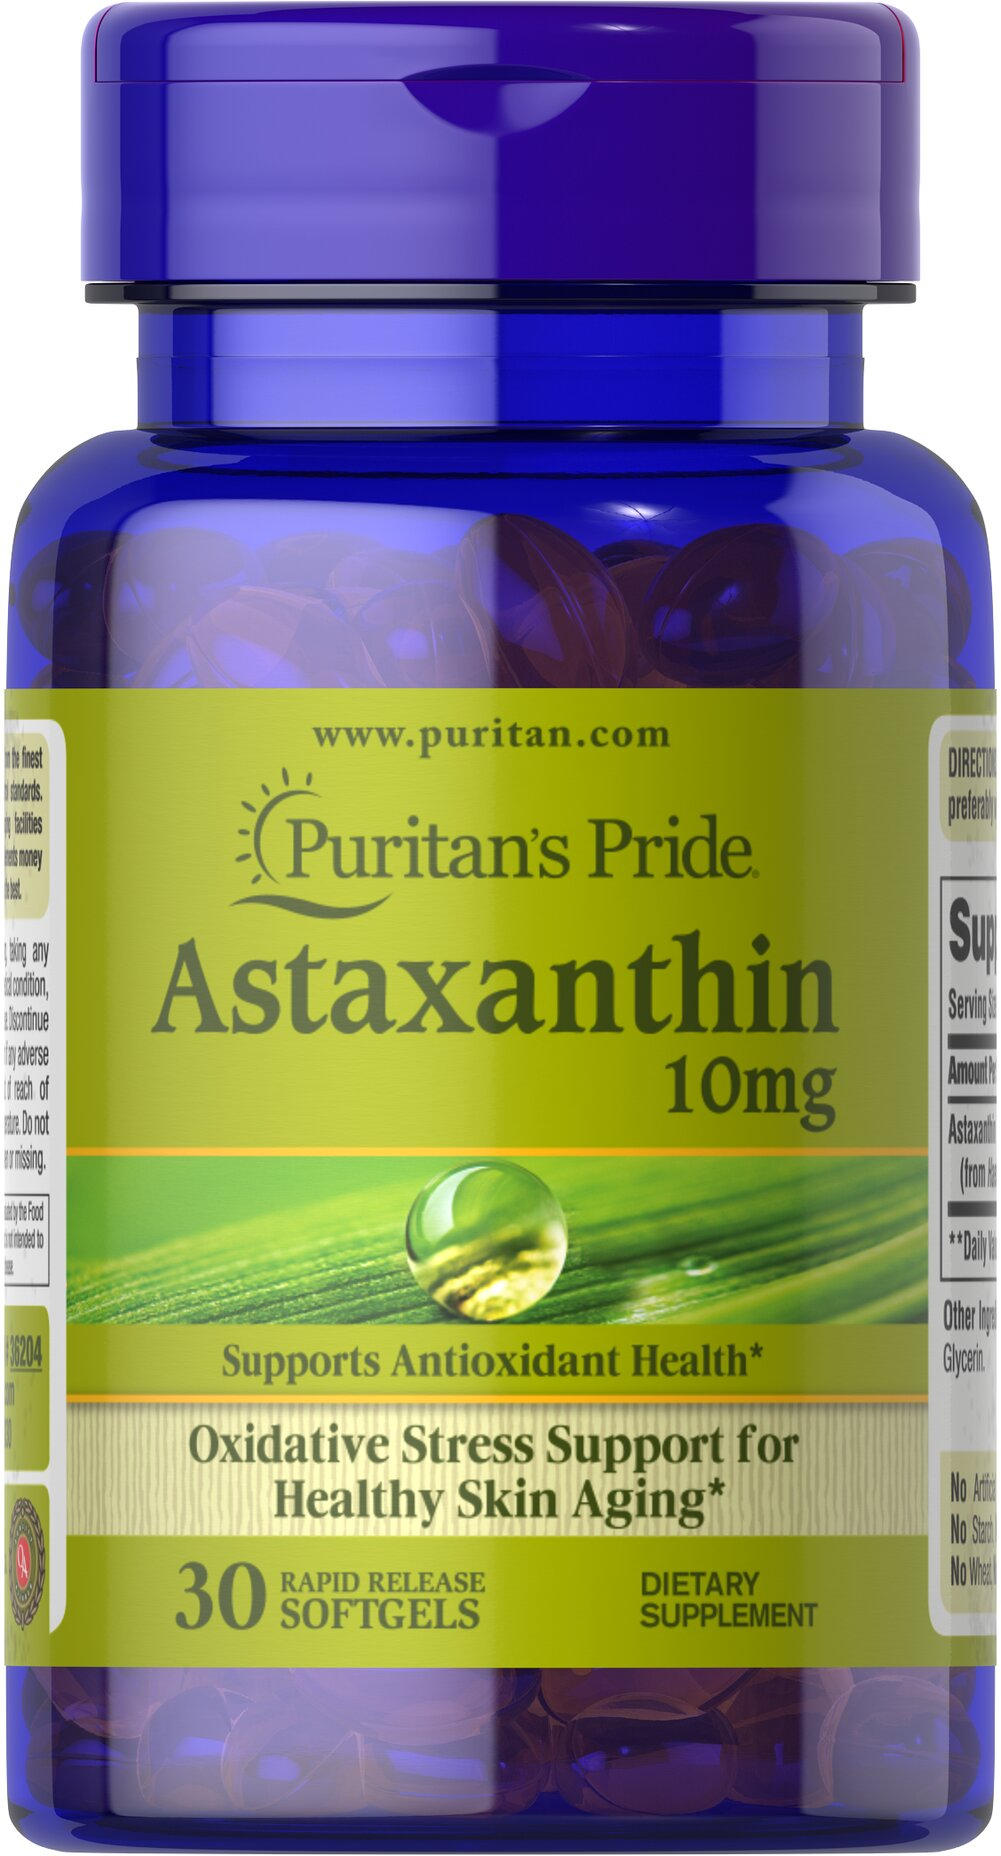 Natural Astaxanthin 10 mg <p>Powerful Antioxidant**</p><p>Suited for Stressful Lifestyles**</p><p>Astaxanthin promotes antioxidant health, which helps fight the cell damaging free radicals that can lead to oxidative stress which may contribute to the premature aging of cells.**</p> 30 Softgels 10 mg $38.99